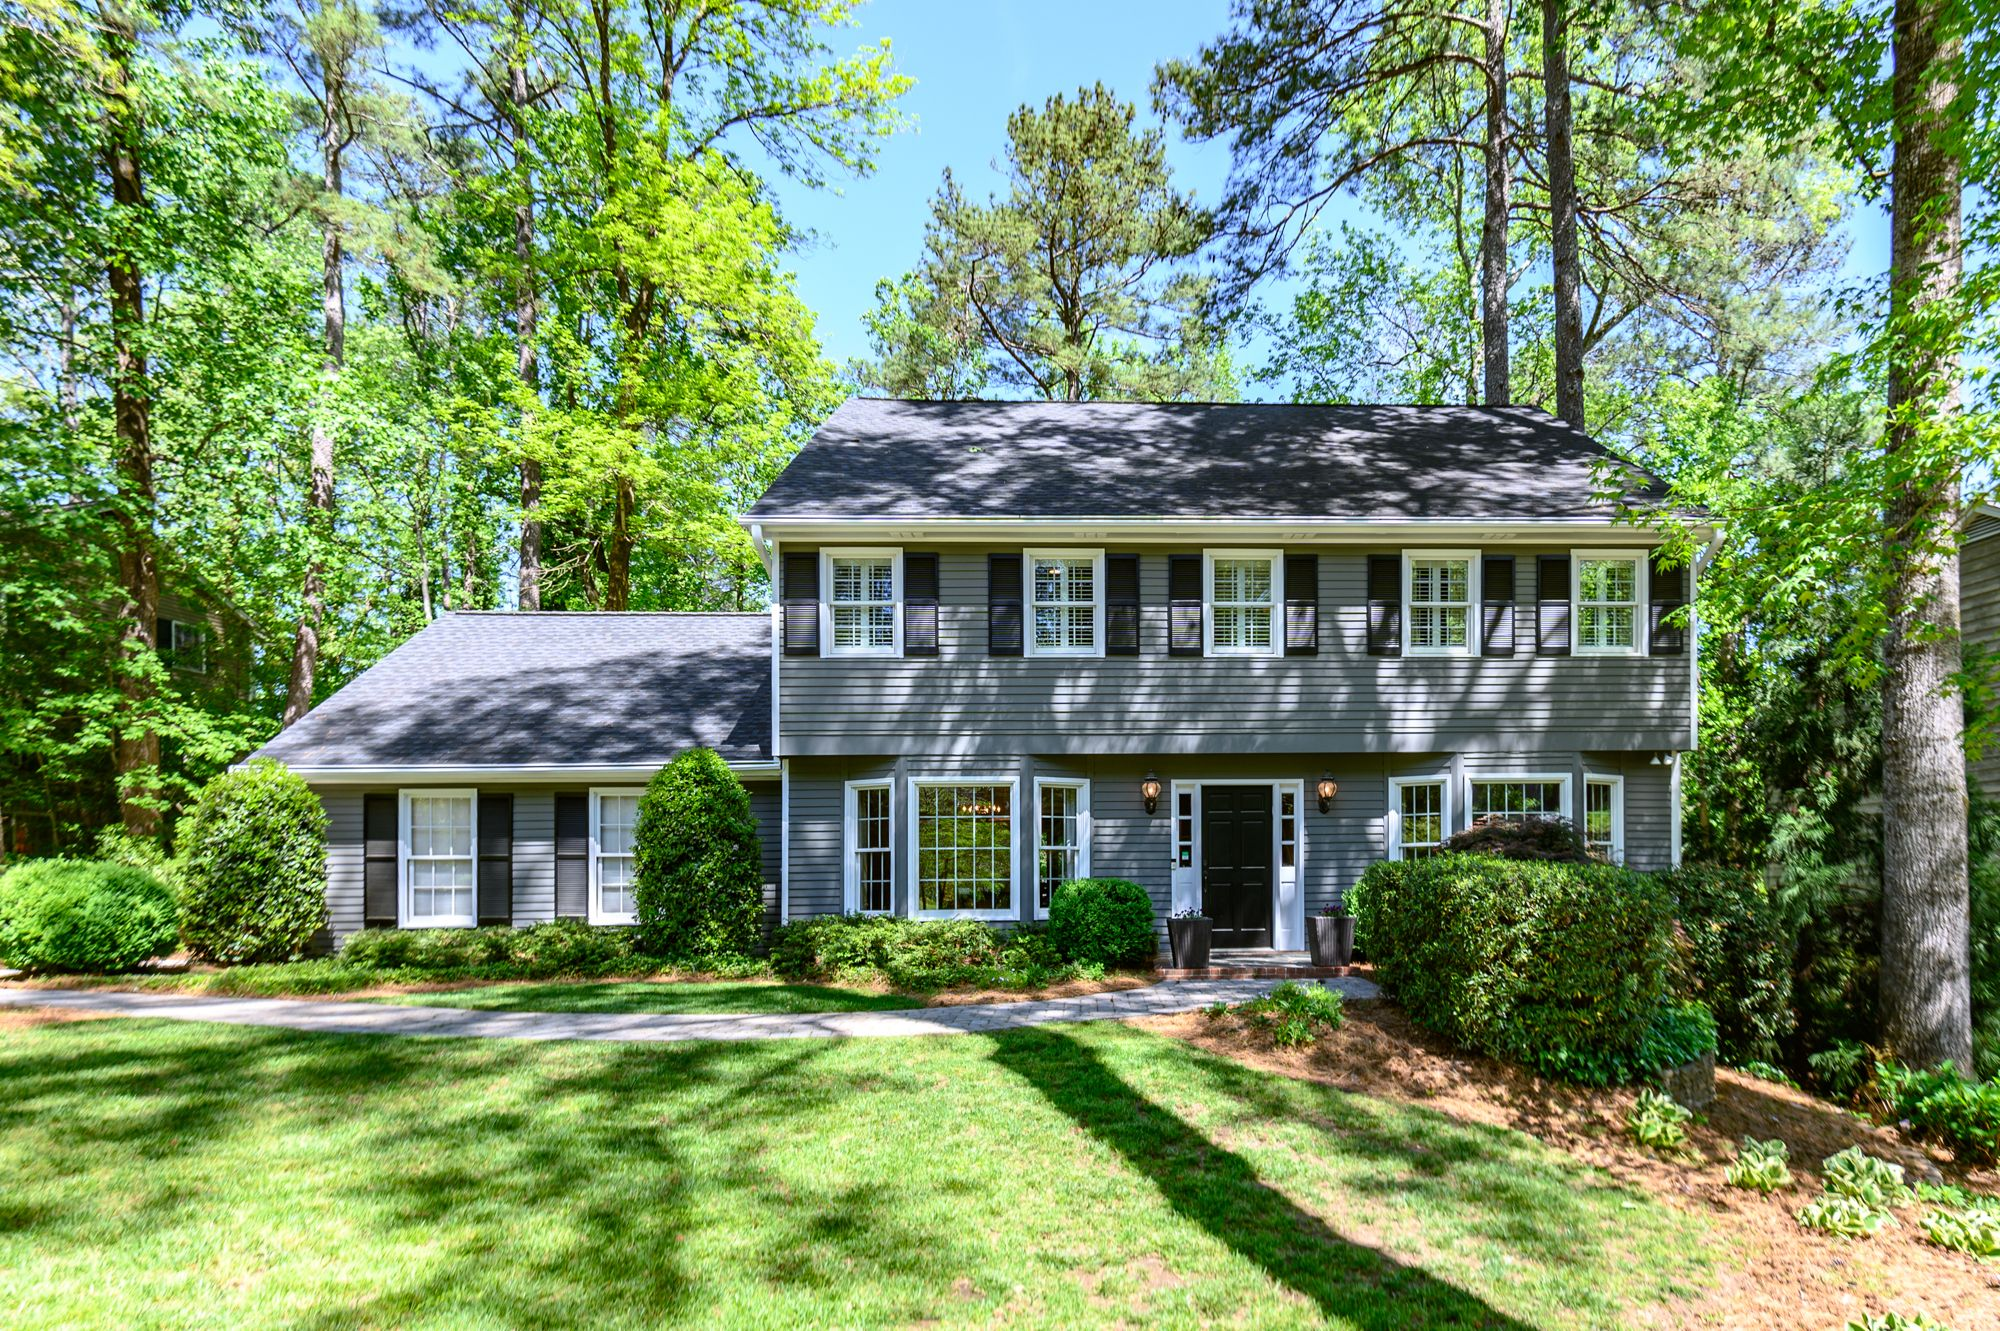 Homes For Sale In Sandy Springs Georgia Screened In Porch Bay Window Backyard